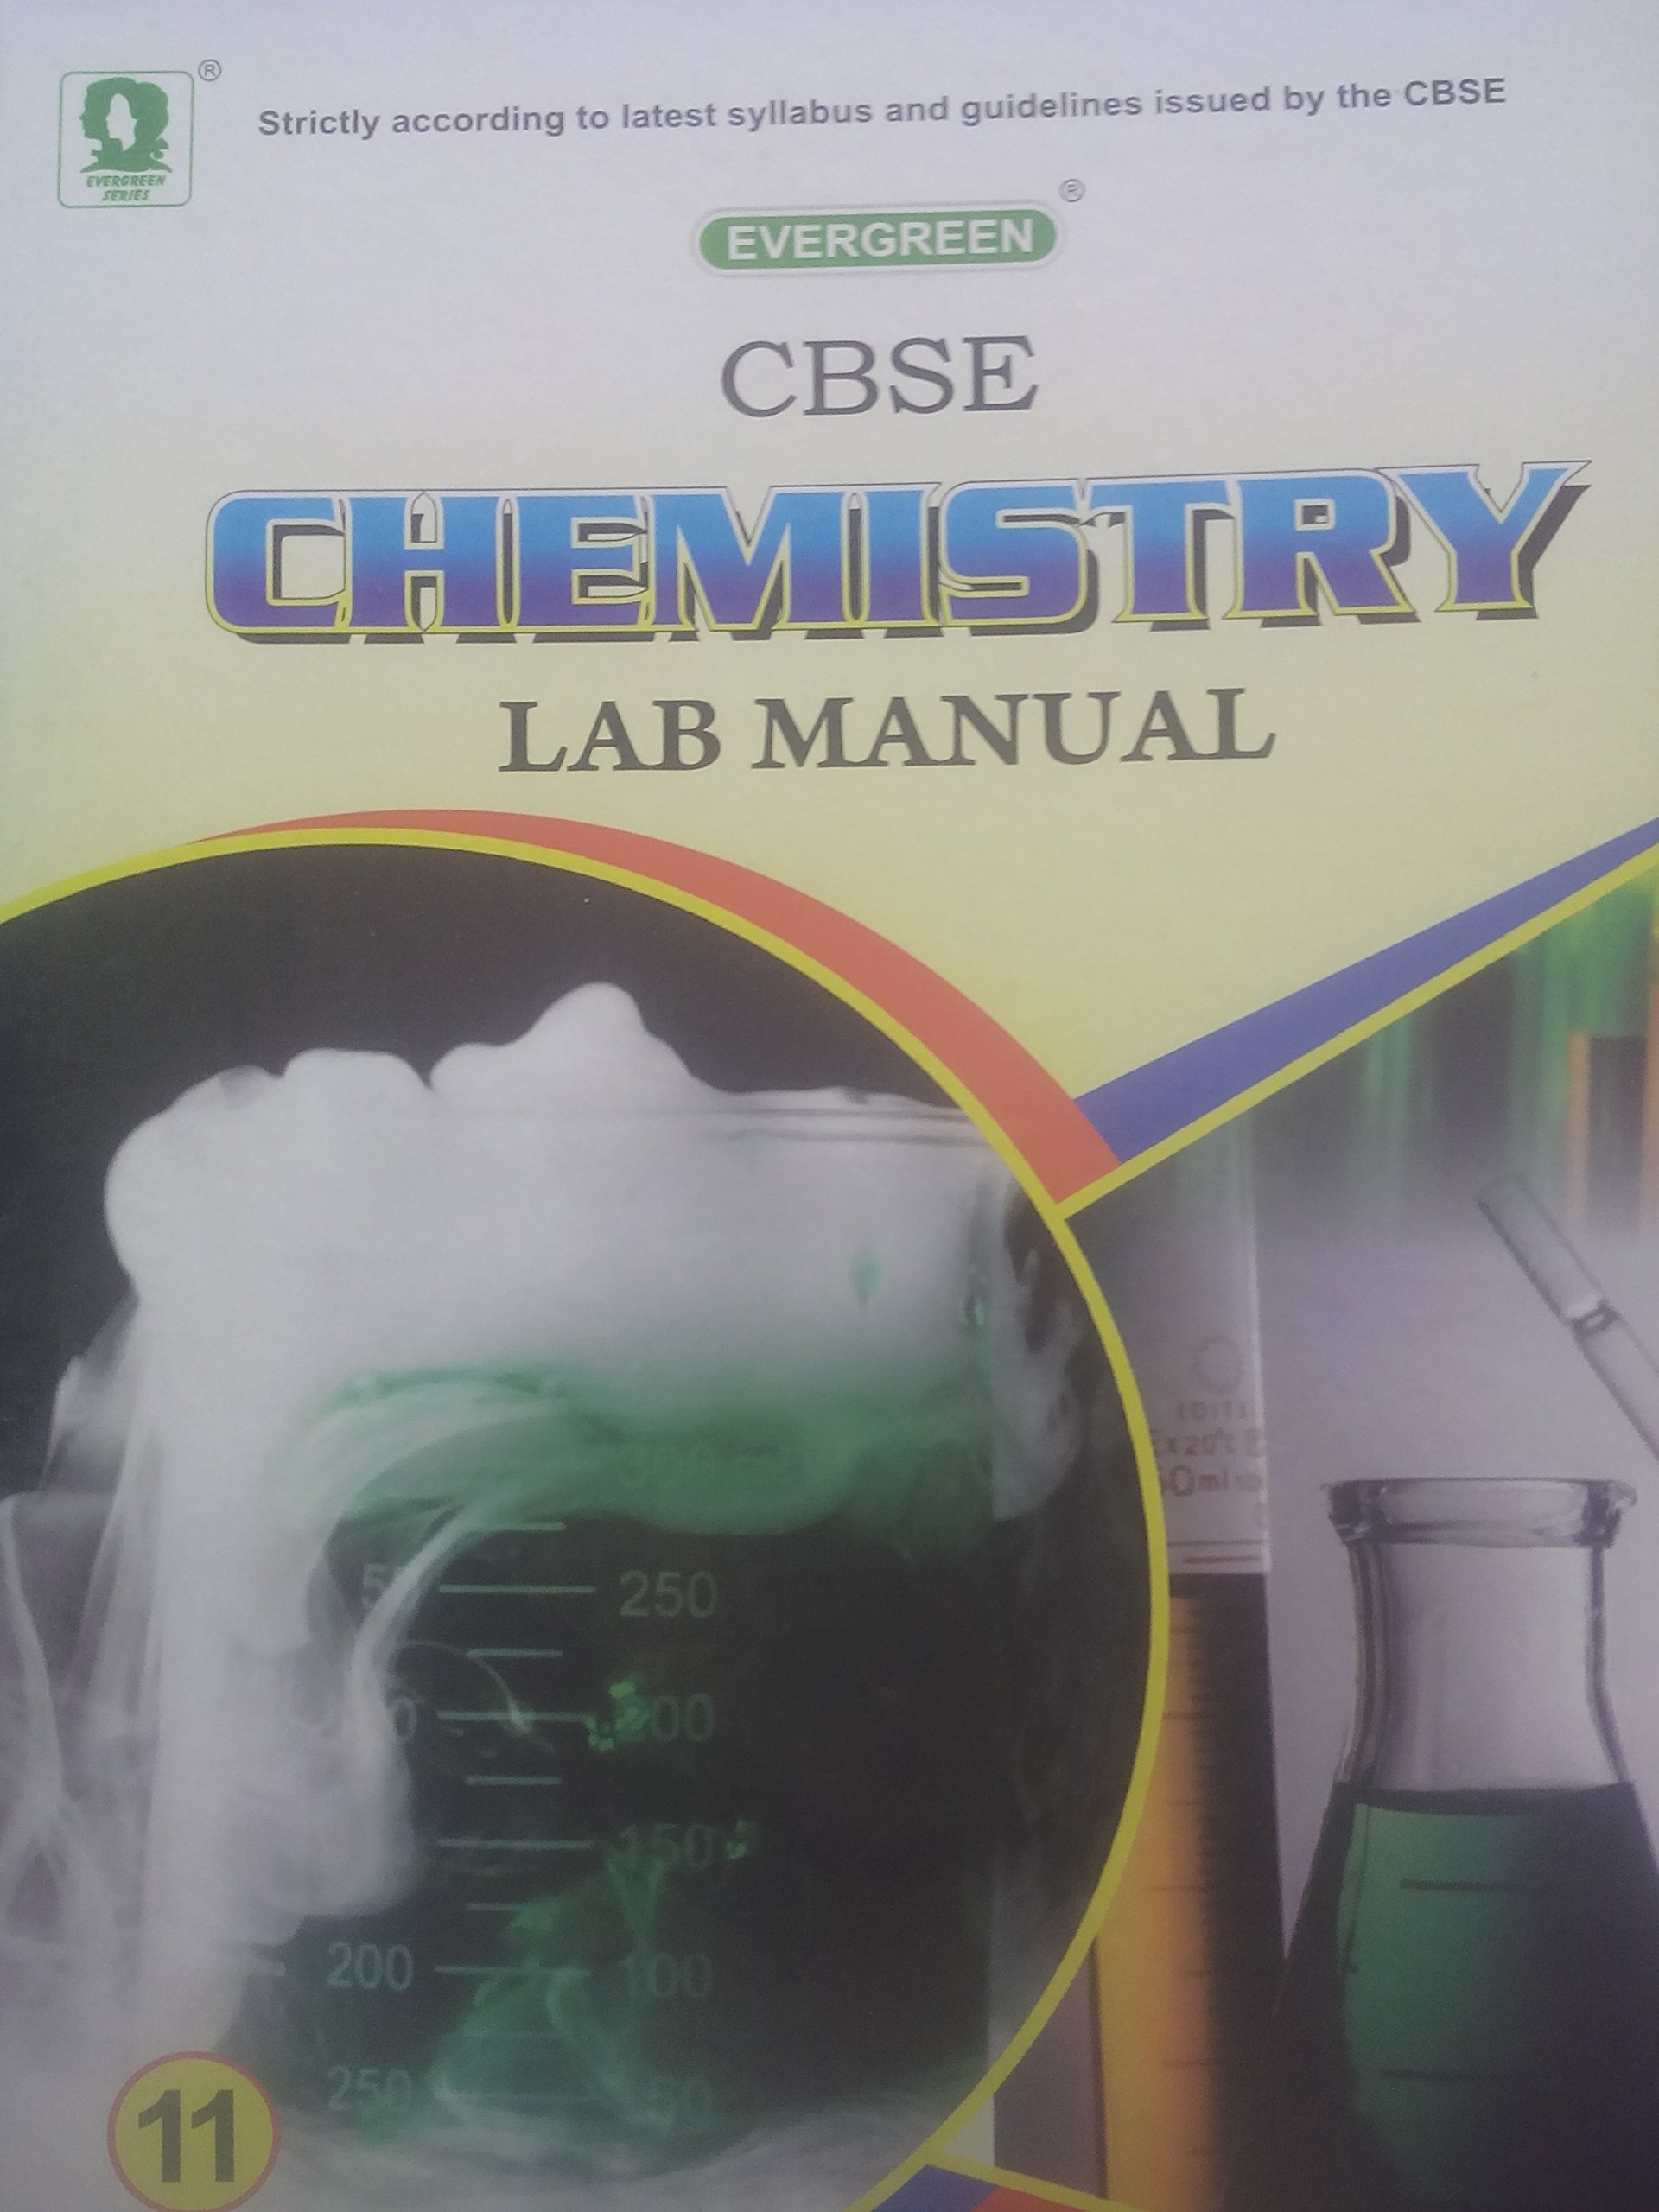 Buy evergreen cbse chemistry lab manual class 11th Book Online at Low  Prices in India | evergreen cbse chemistry lab manual class 11th Reviews &  Ratings ...